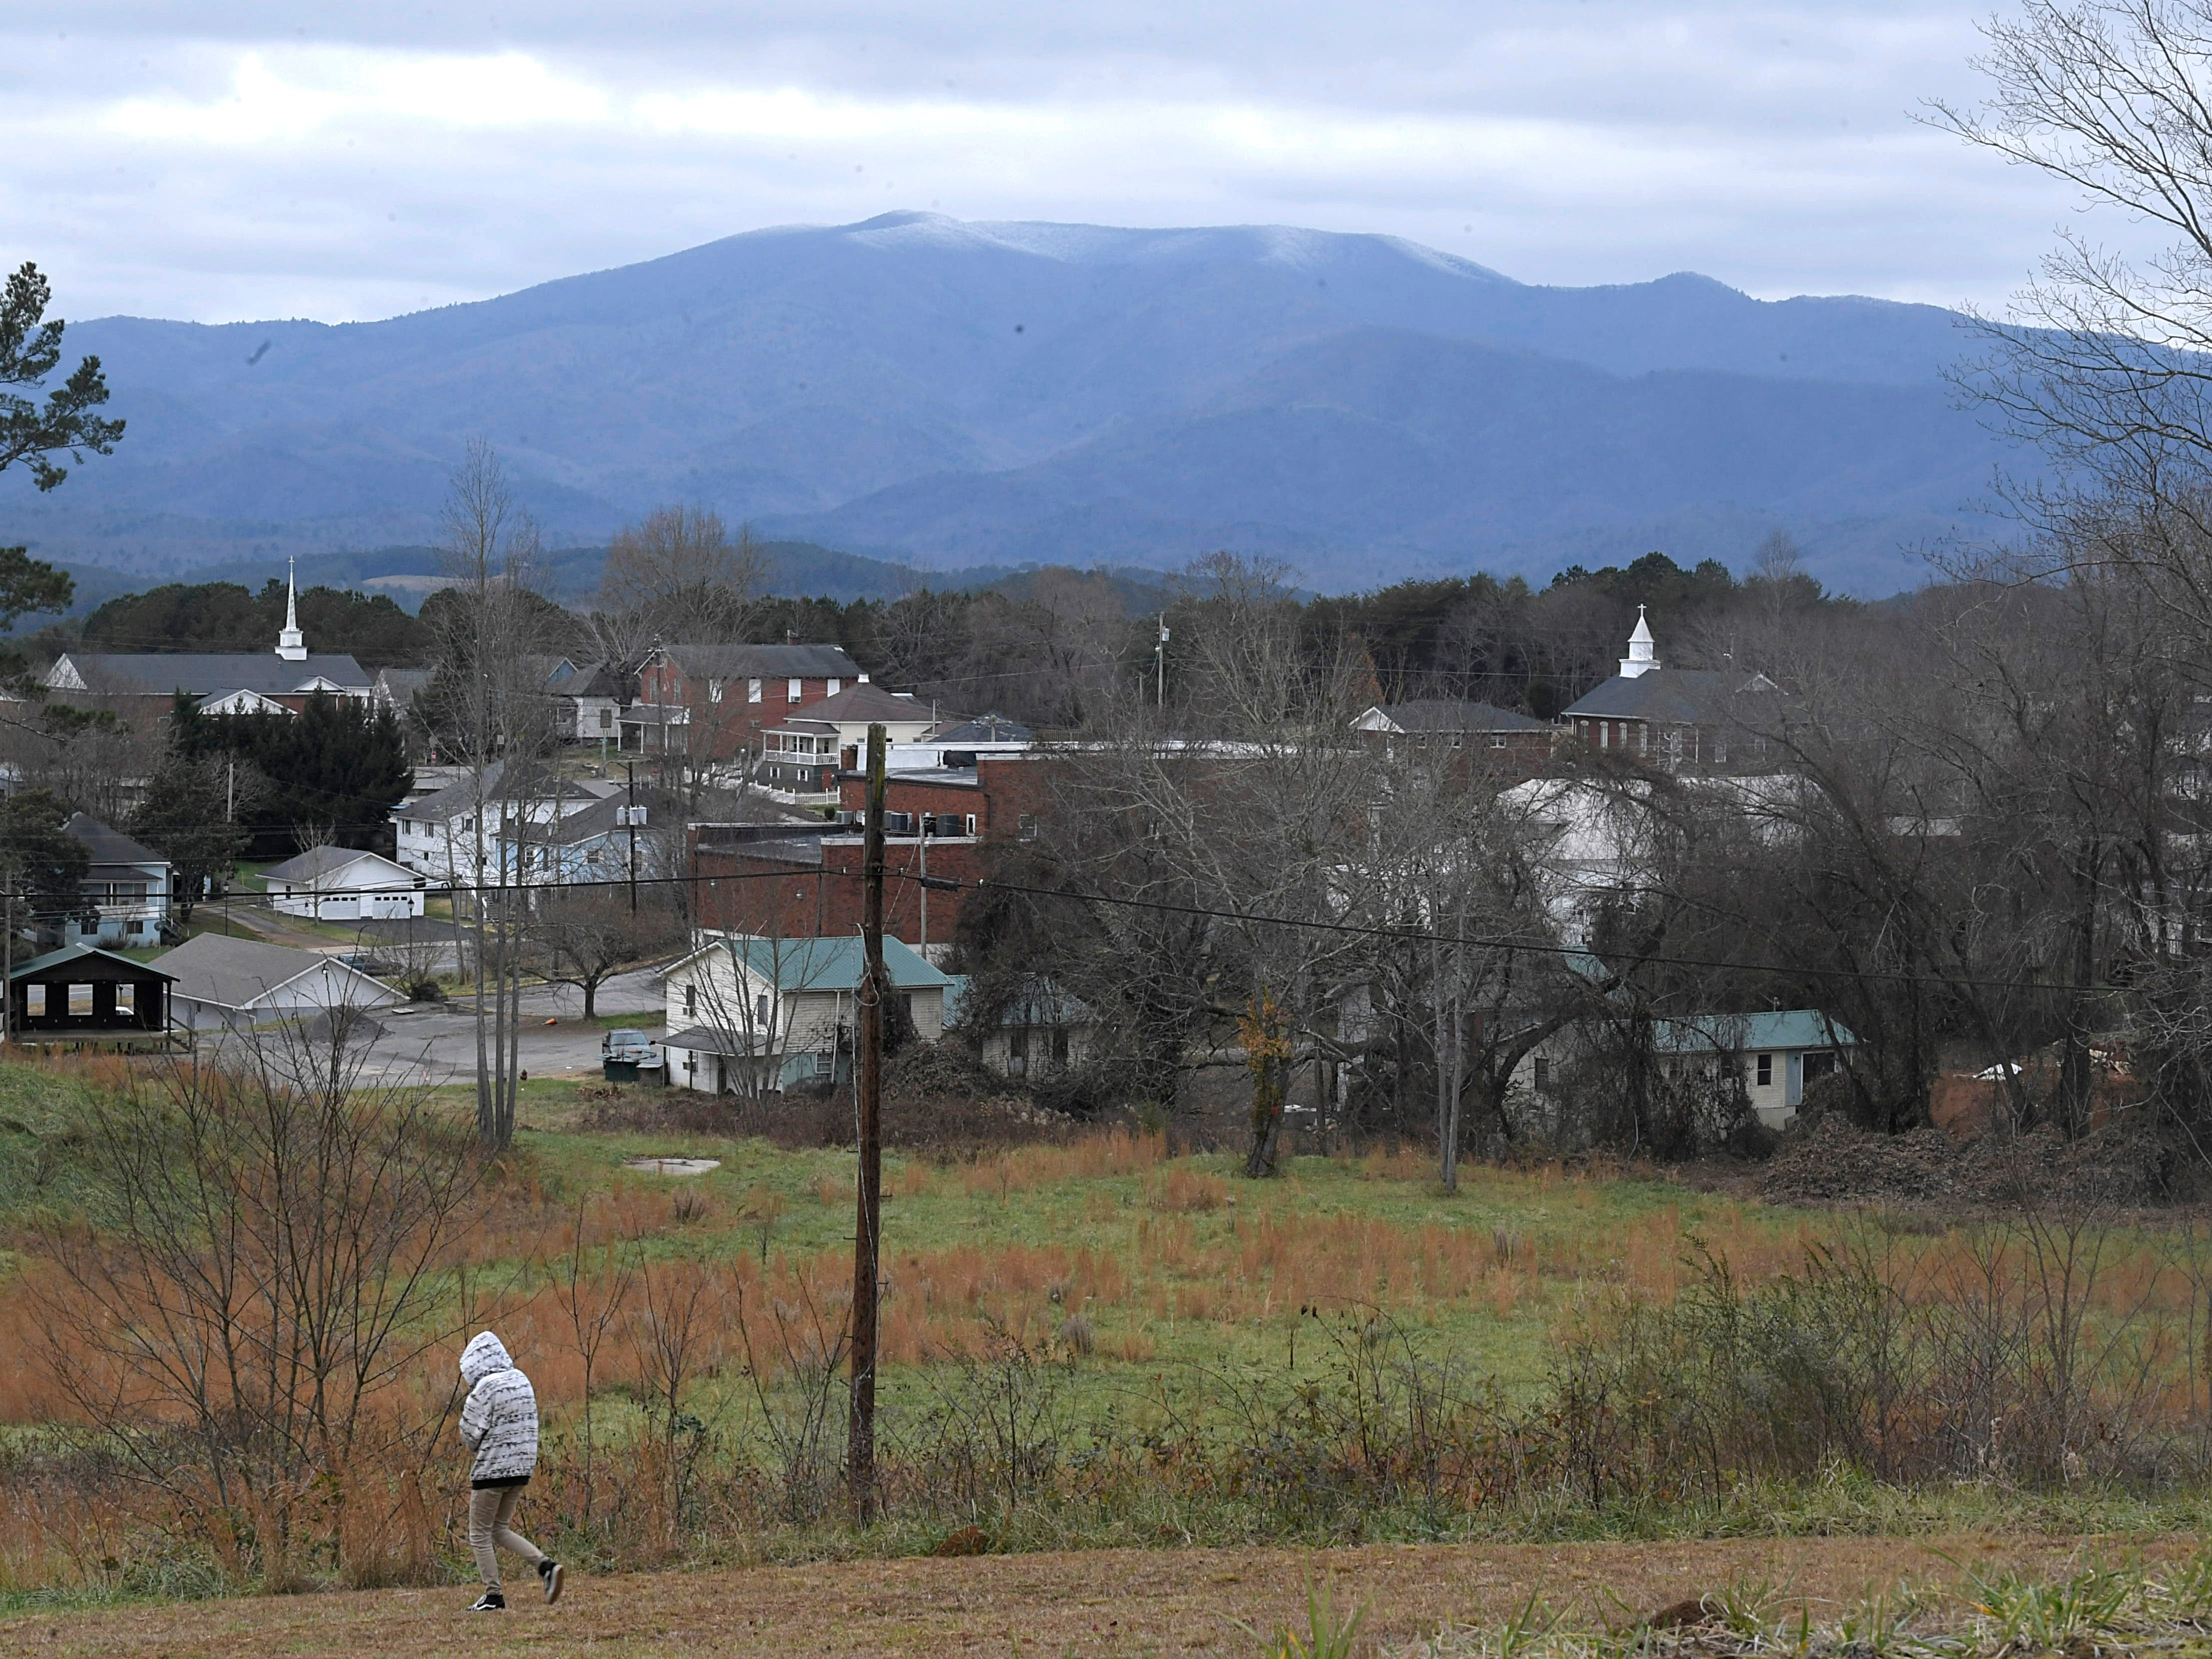 A view of Appalachian Mountains with downtown Ducktown, Tennessee with the foreground on Dec. 4, 2018.